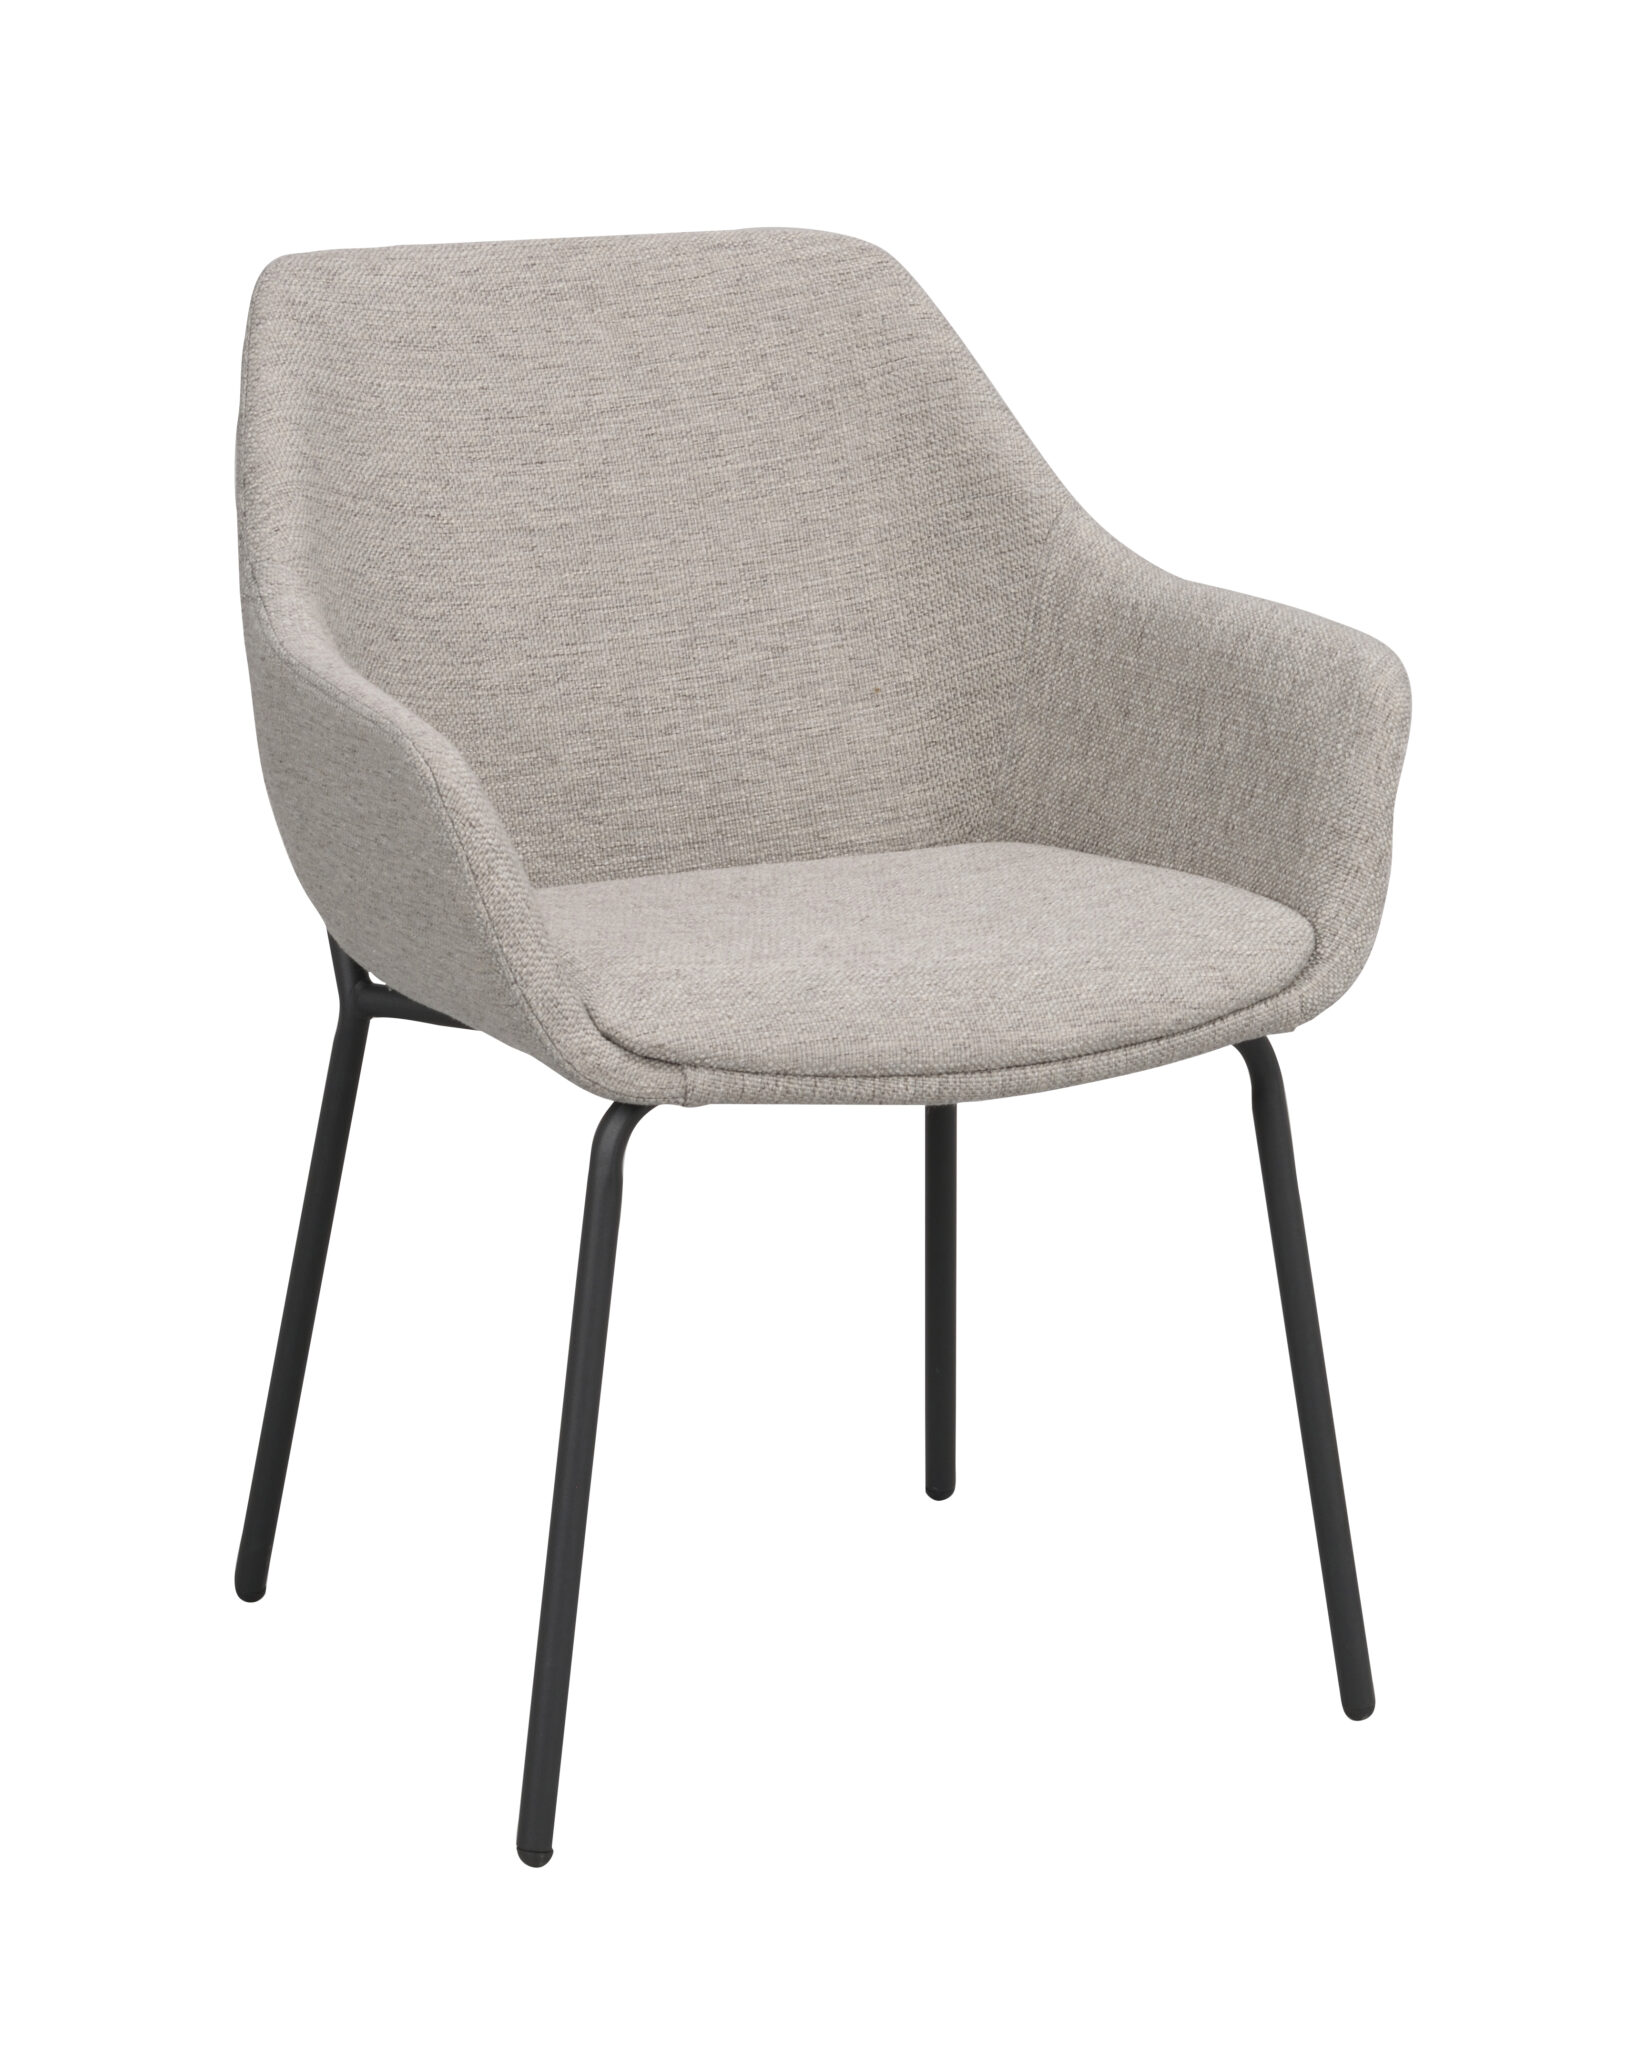 Haley arm chair Light grey_black 110480 1